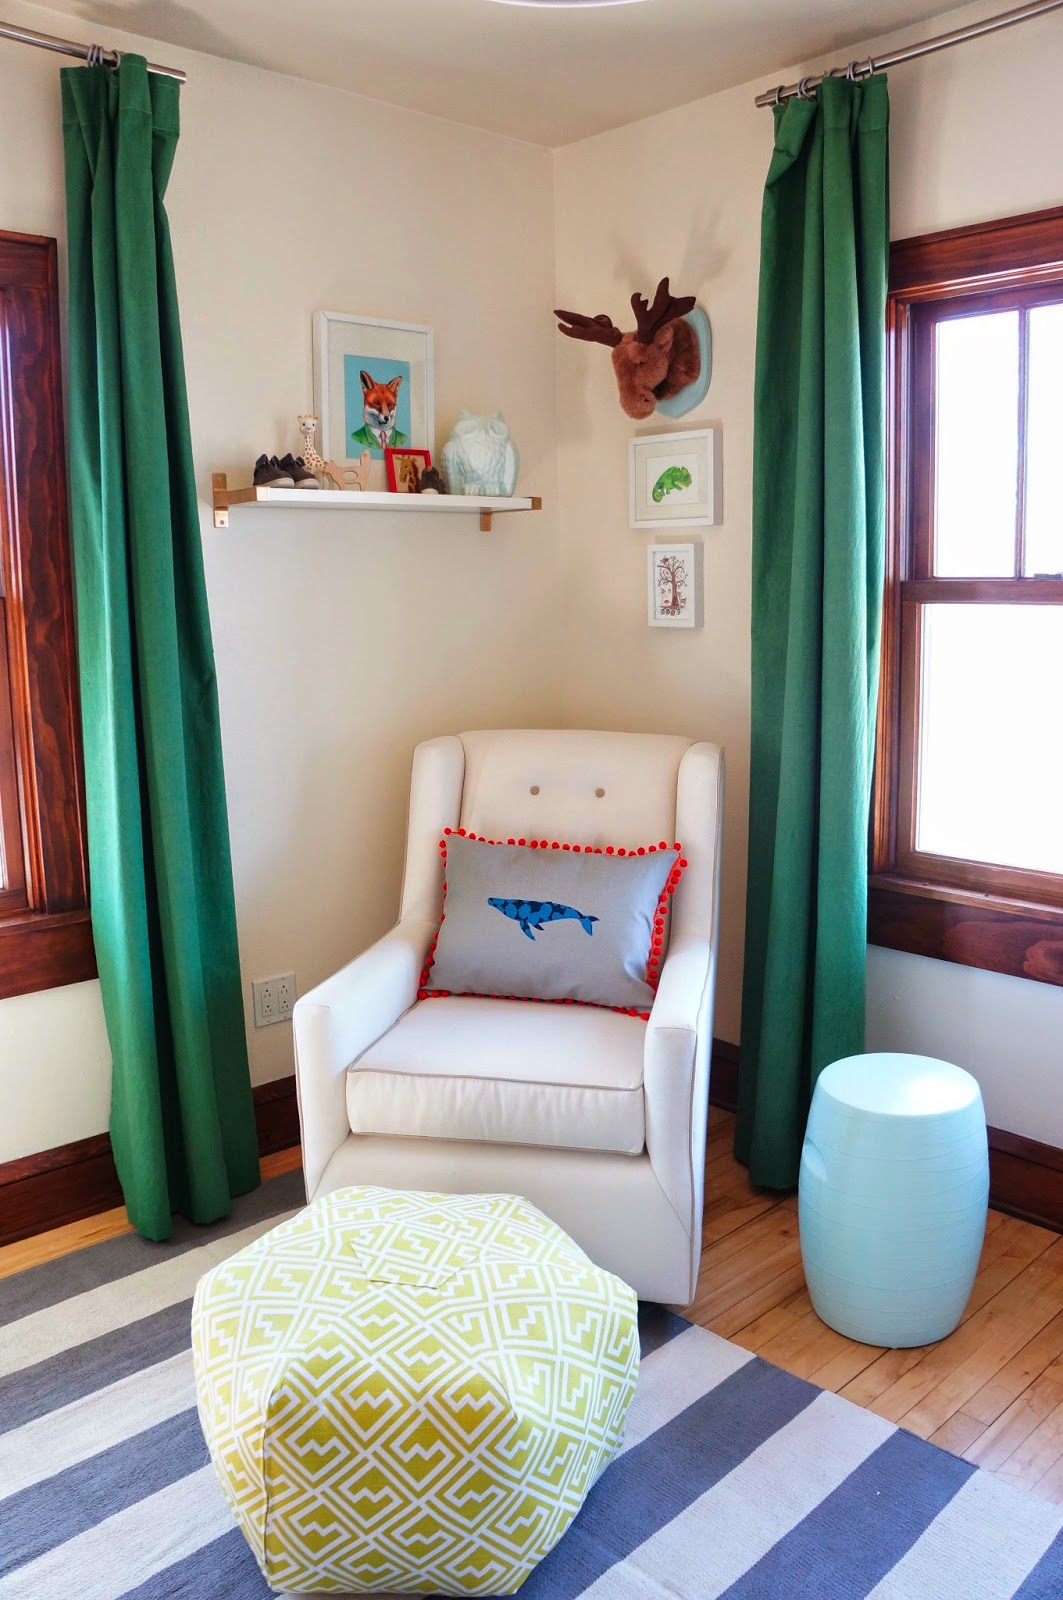 Kelly Green Curtains With Light Gray Grasscloth Walls: Laura Wifler: DIY: Dying Curtains With